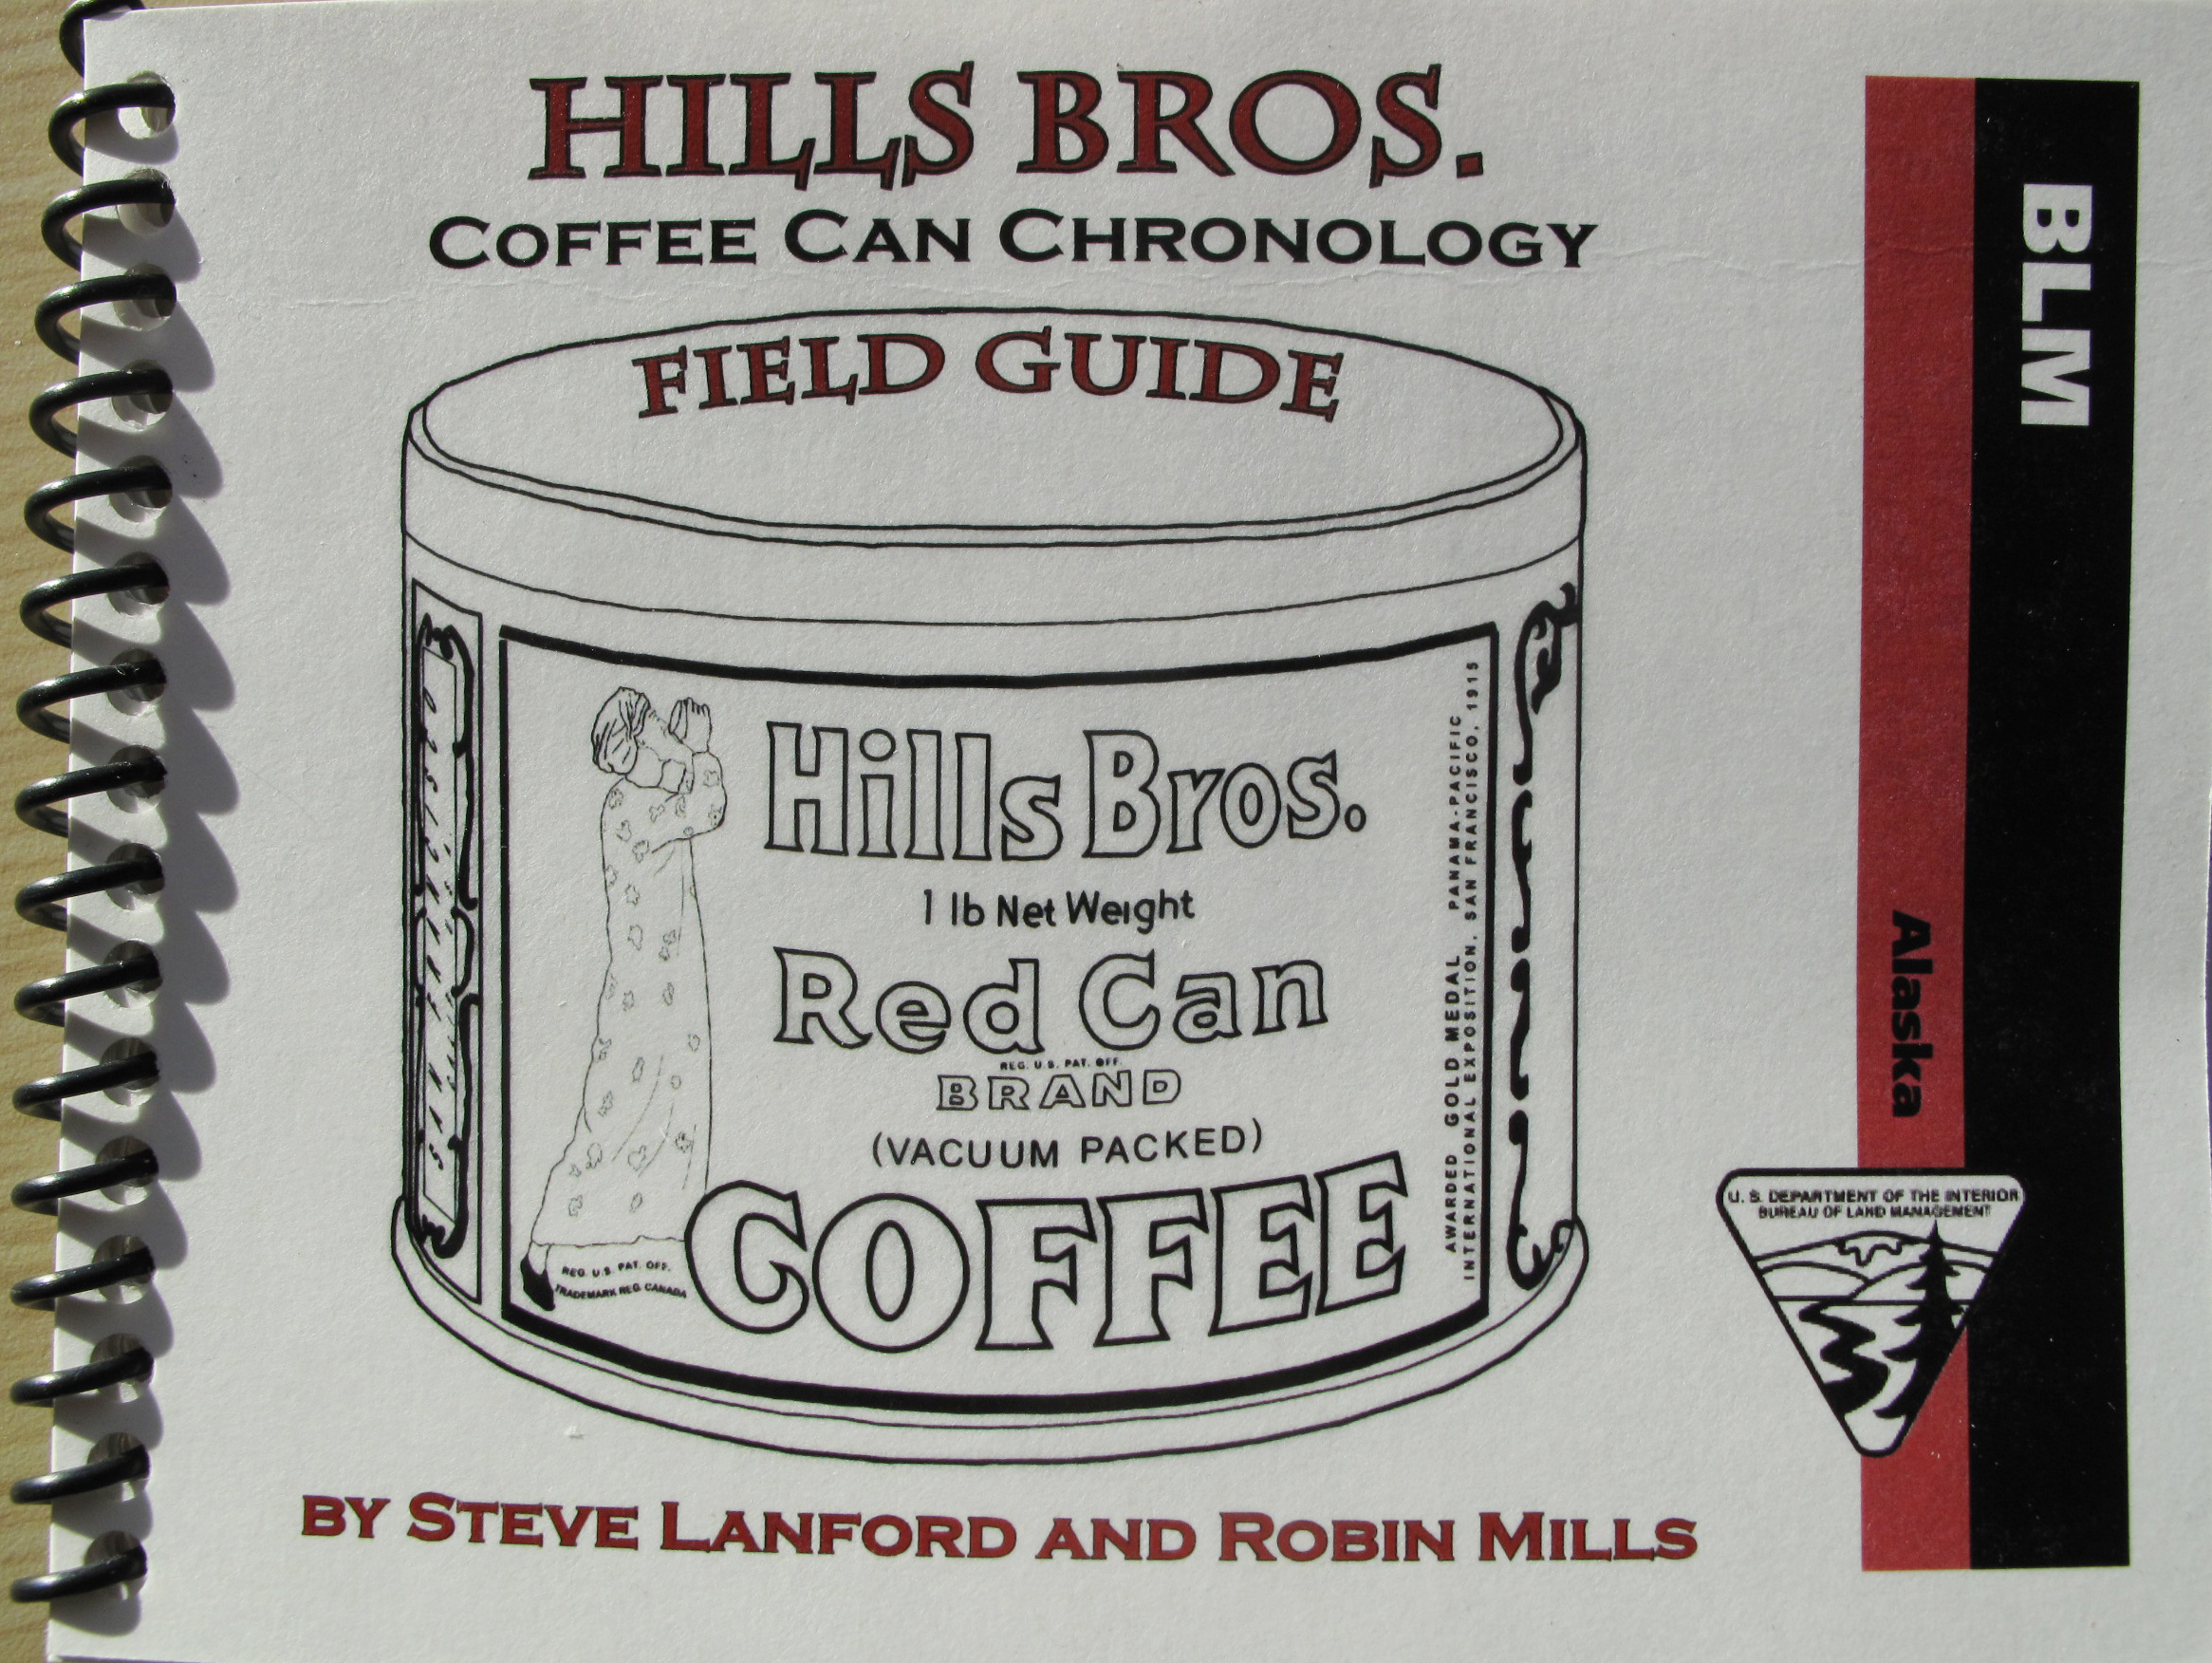 The coffee can field guide produced by Steve Lanford and Robin Mills. (Photo by Ned Rozell)